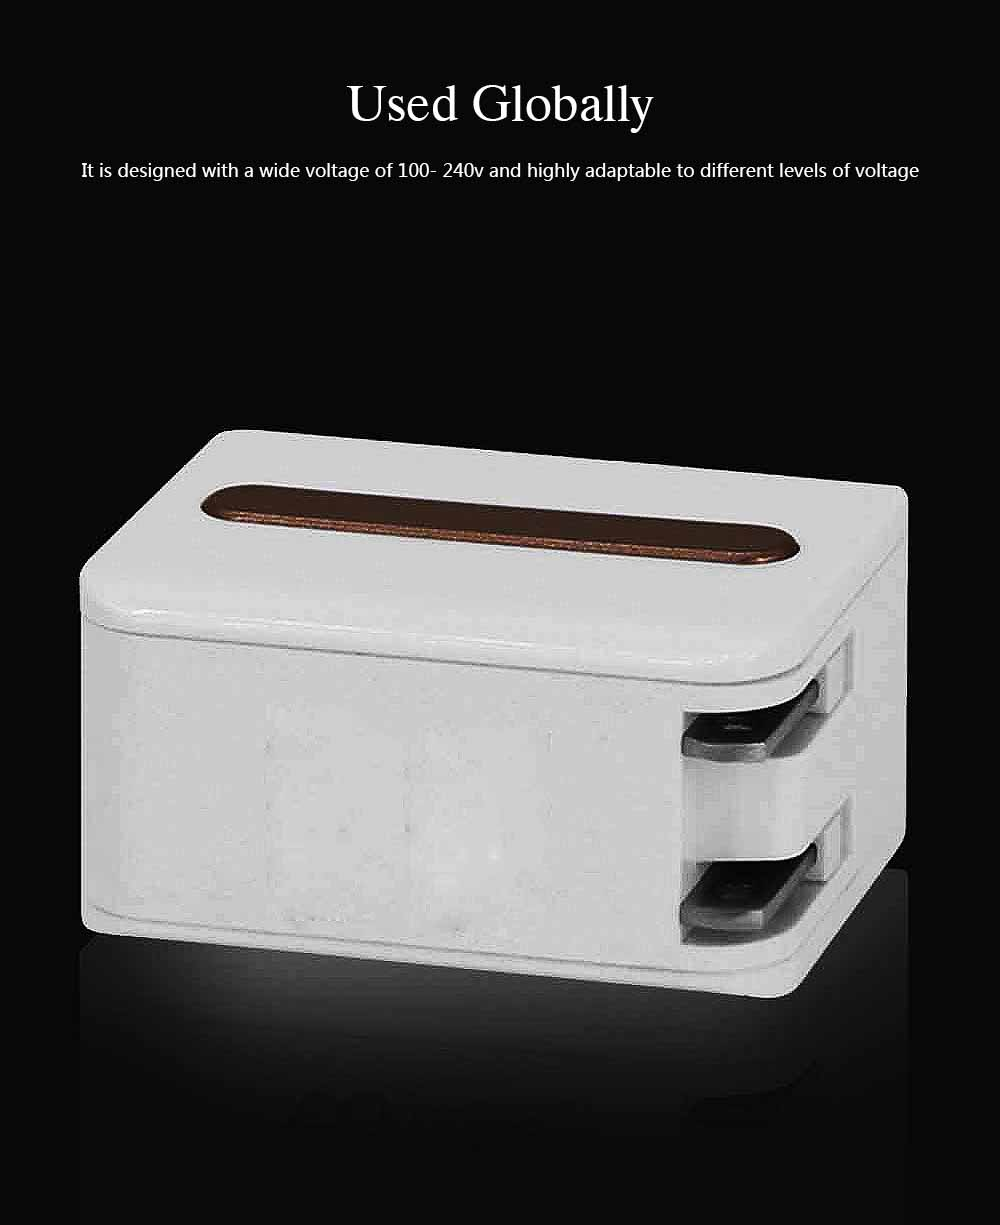 New Mobile Phone Charger, Foldable Multi-port USB Charging Plug Smart Phone Universal Phone Charger 2